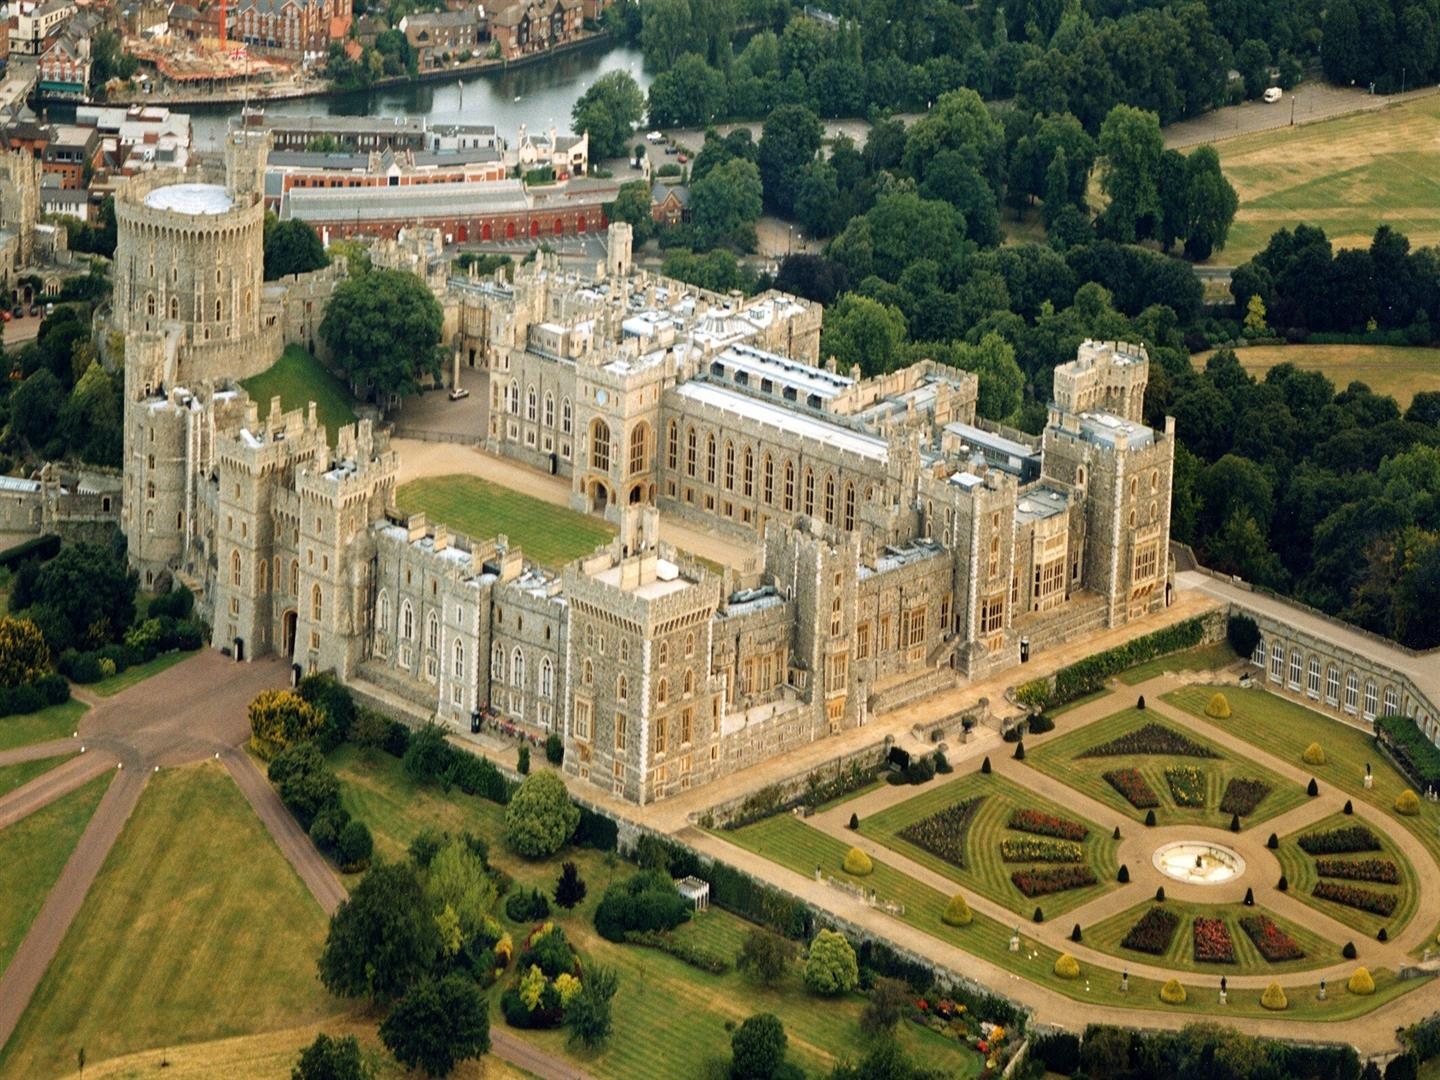 1440x1080 Windsor Castle Royal Residence in UK Point of Interest HD Wallpapers